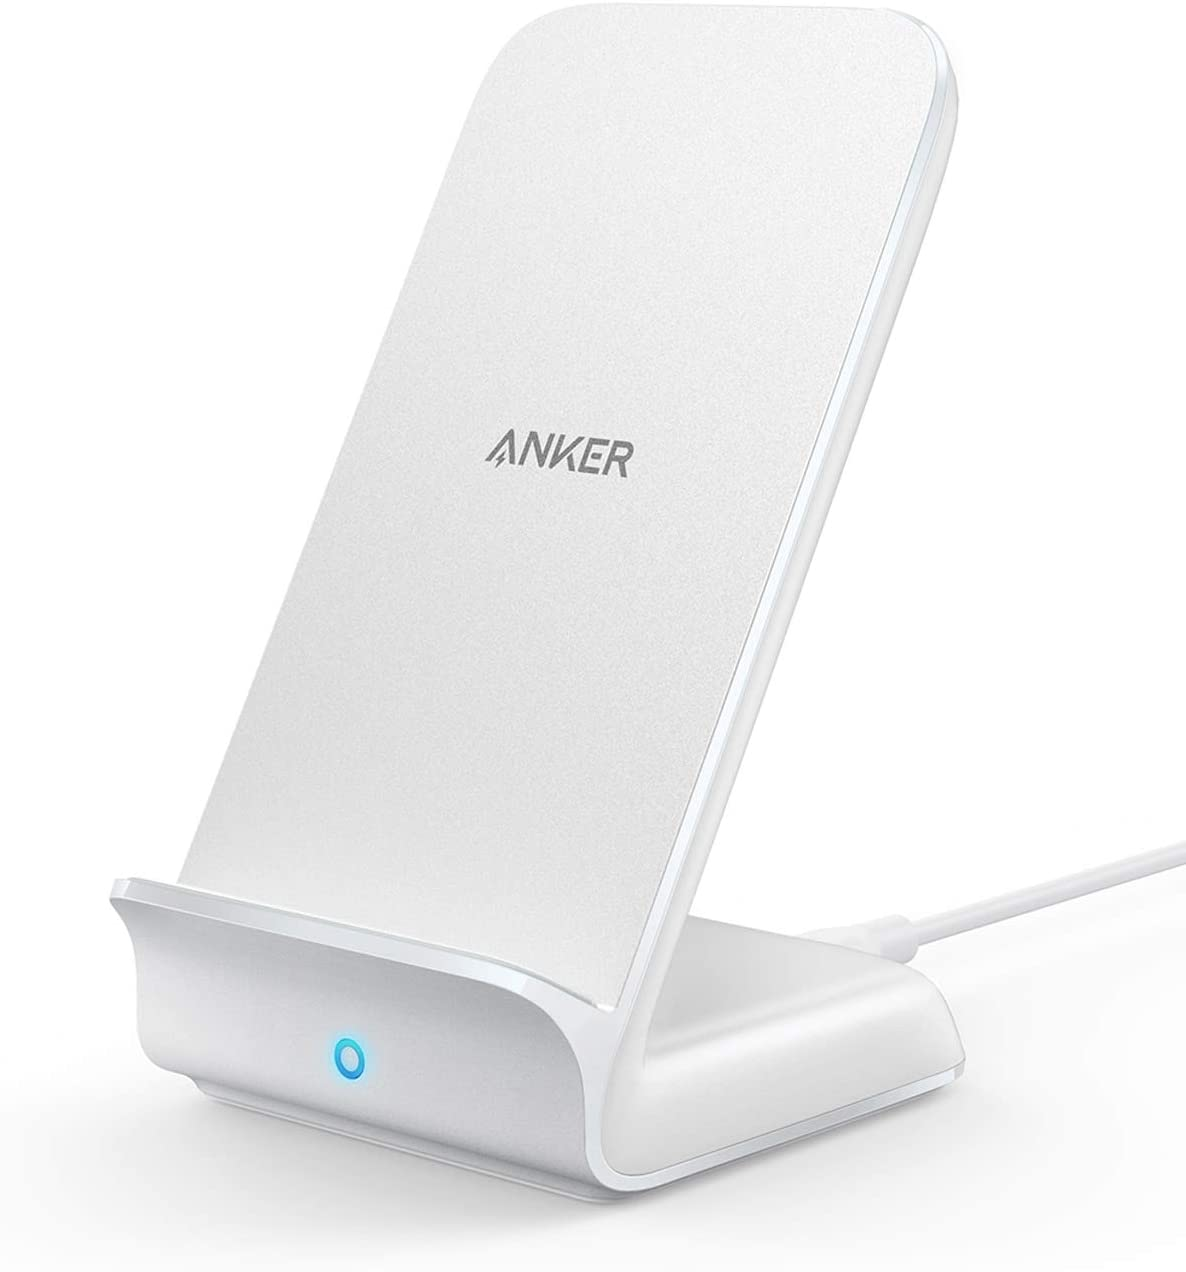 Amazon.com: Anker Wireless Charger, PowerWave 7.5 Stand, Qi-Certified, Fast  Charging iPhone 11, 11 Pro, 11 Pro Max, XR, Xs Max, Xs, X, 8, 8 Plus,  Galaxy S 20 S10 S9 S8, Note